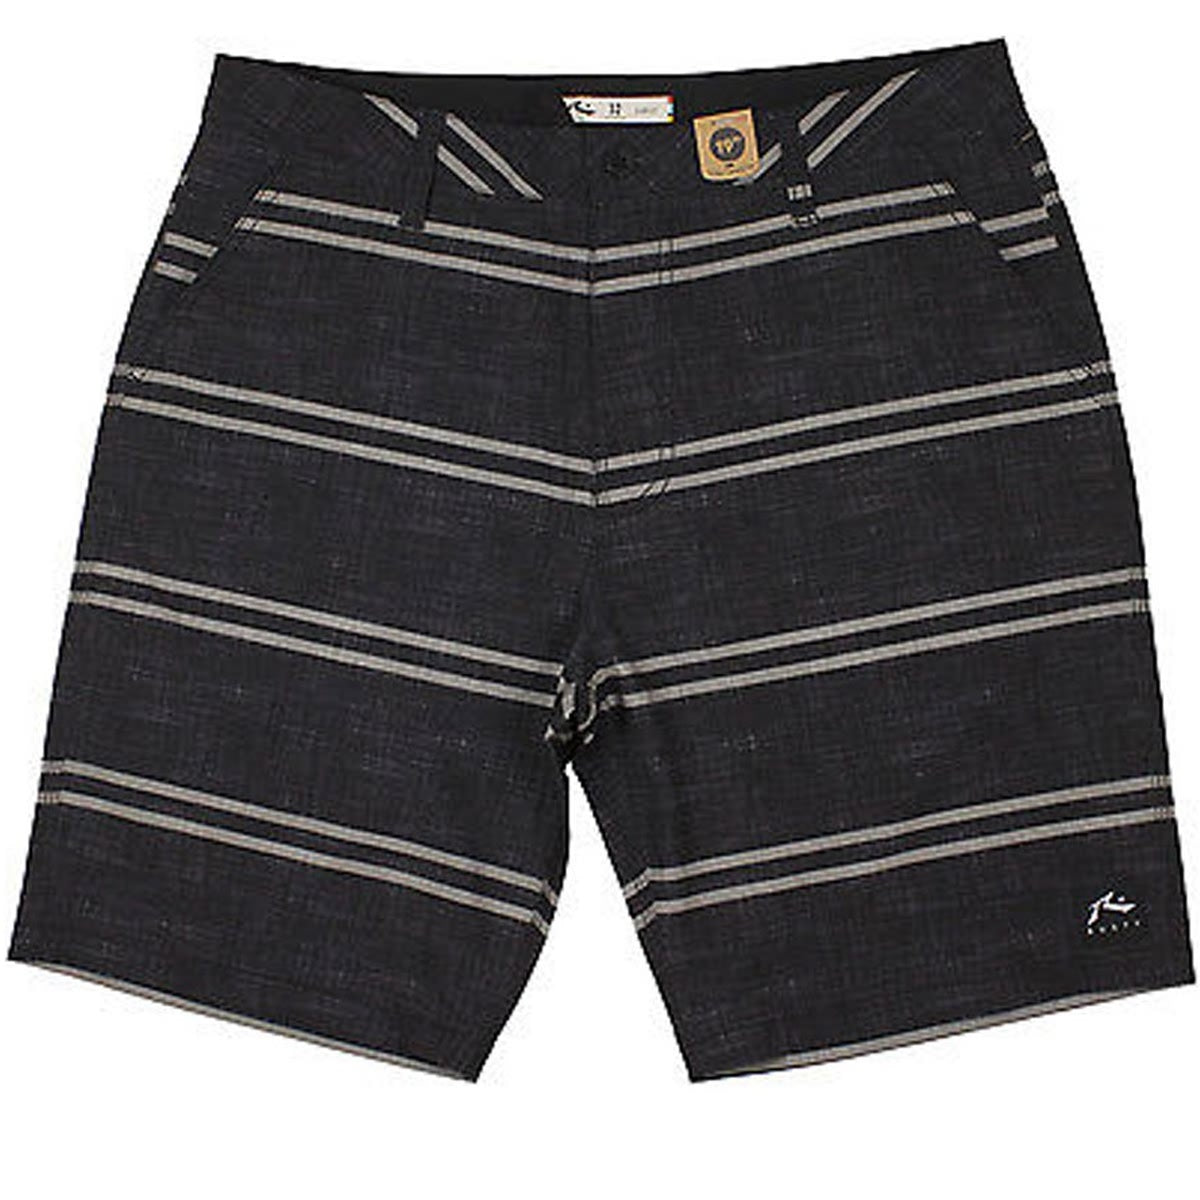 8d33e99b05 Rusty Stroller Men's Boardshort Shorts – Skate Gear, Skate Shoes ...